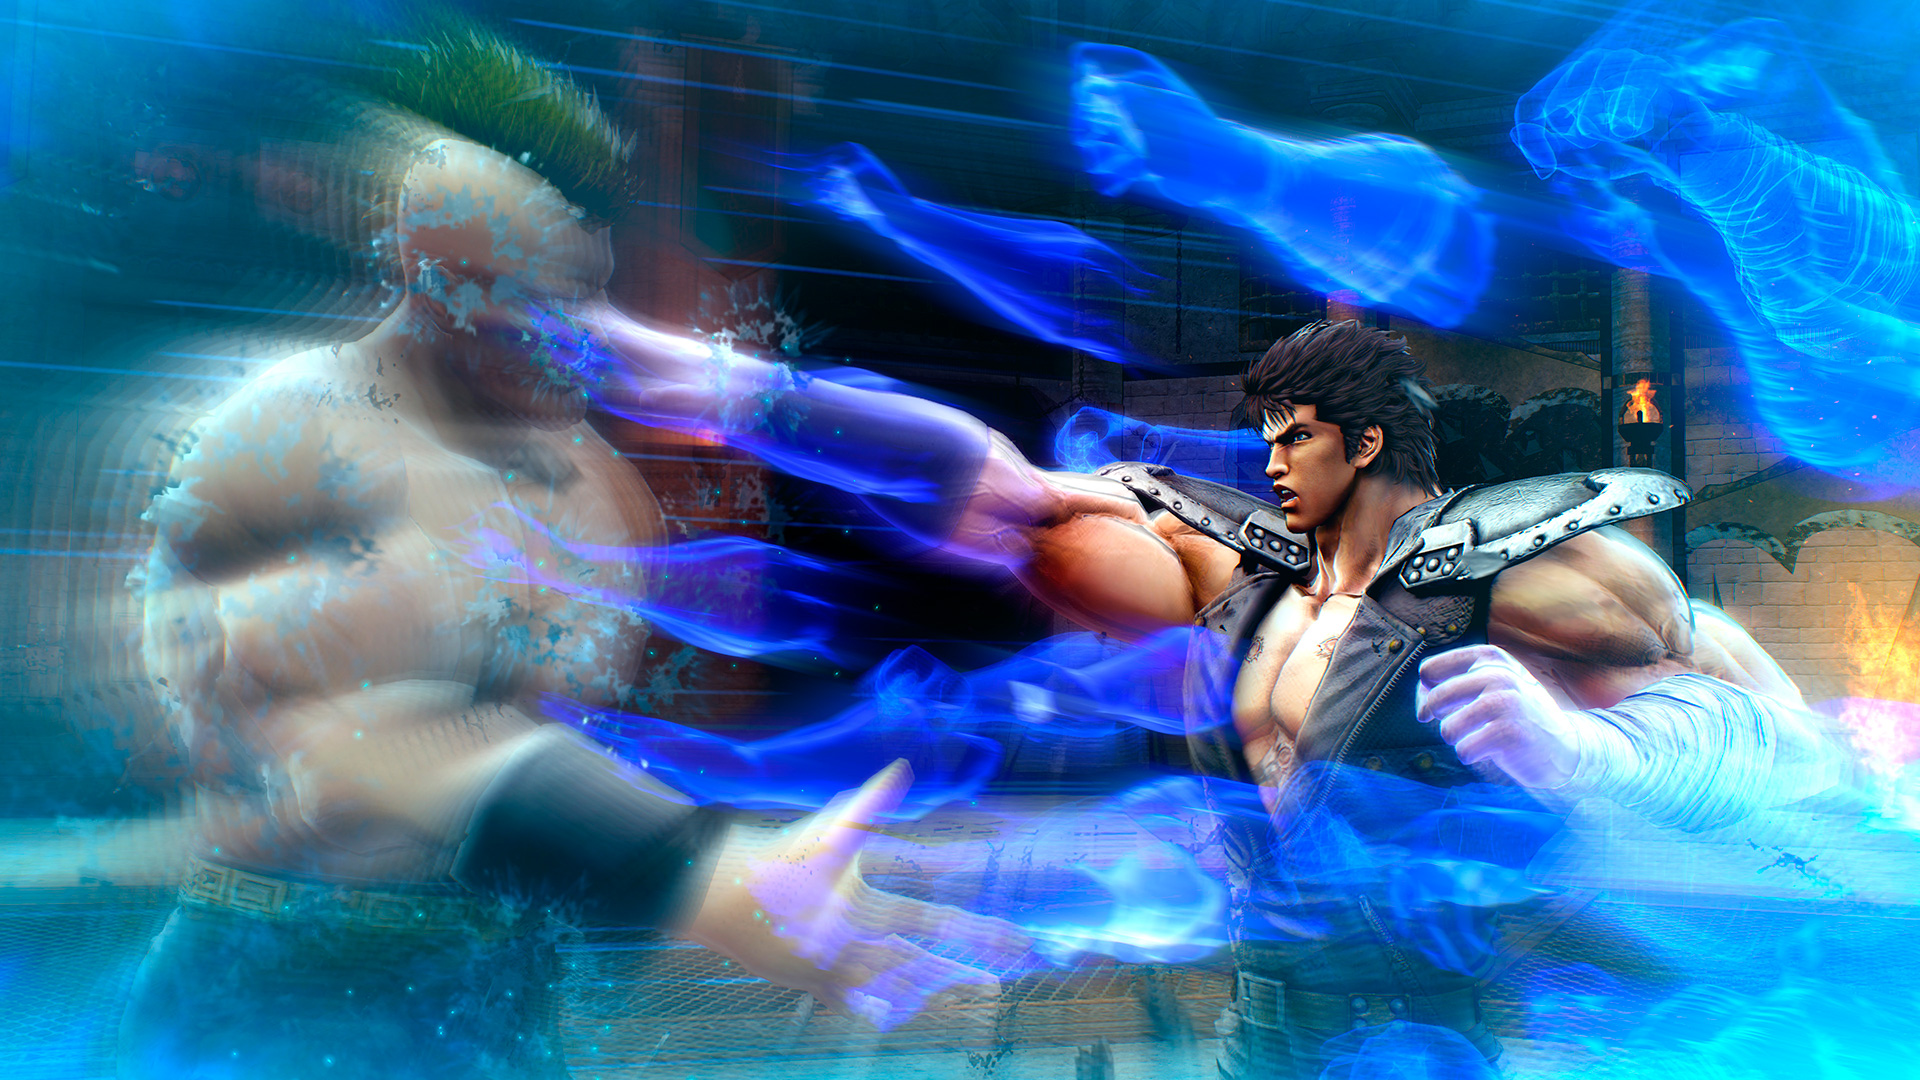 Review   Like any fight Fist of the North Star Lost Paradise is 1920x1080